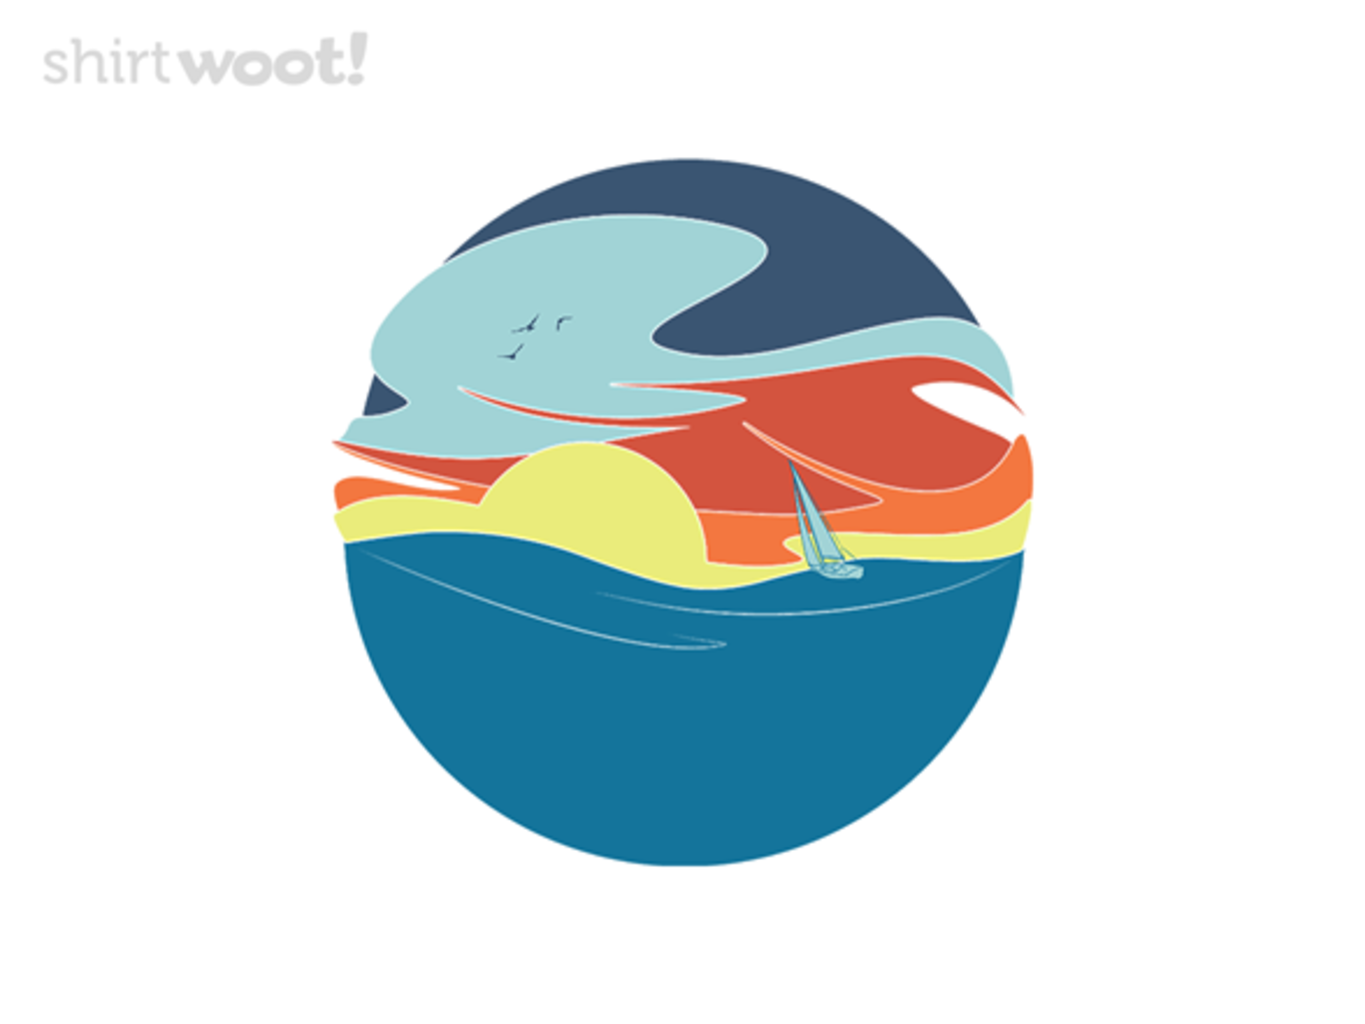 Woot!: Sailing to the Sunset - $8.00 + $5 standard shipping